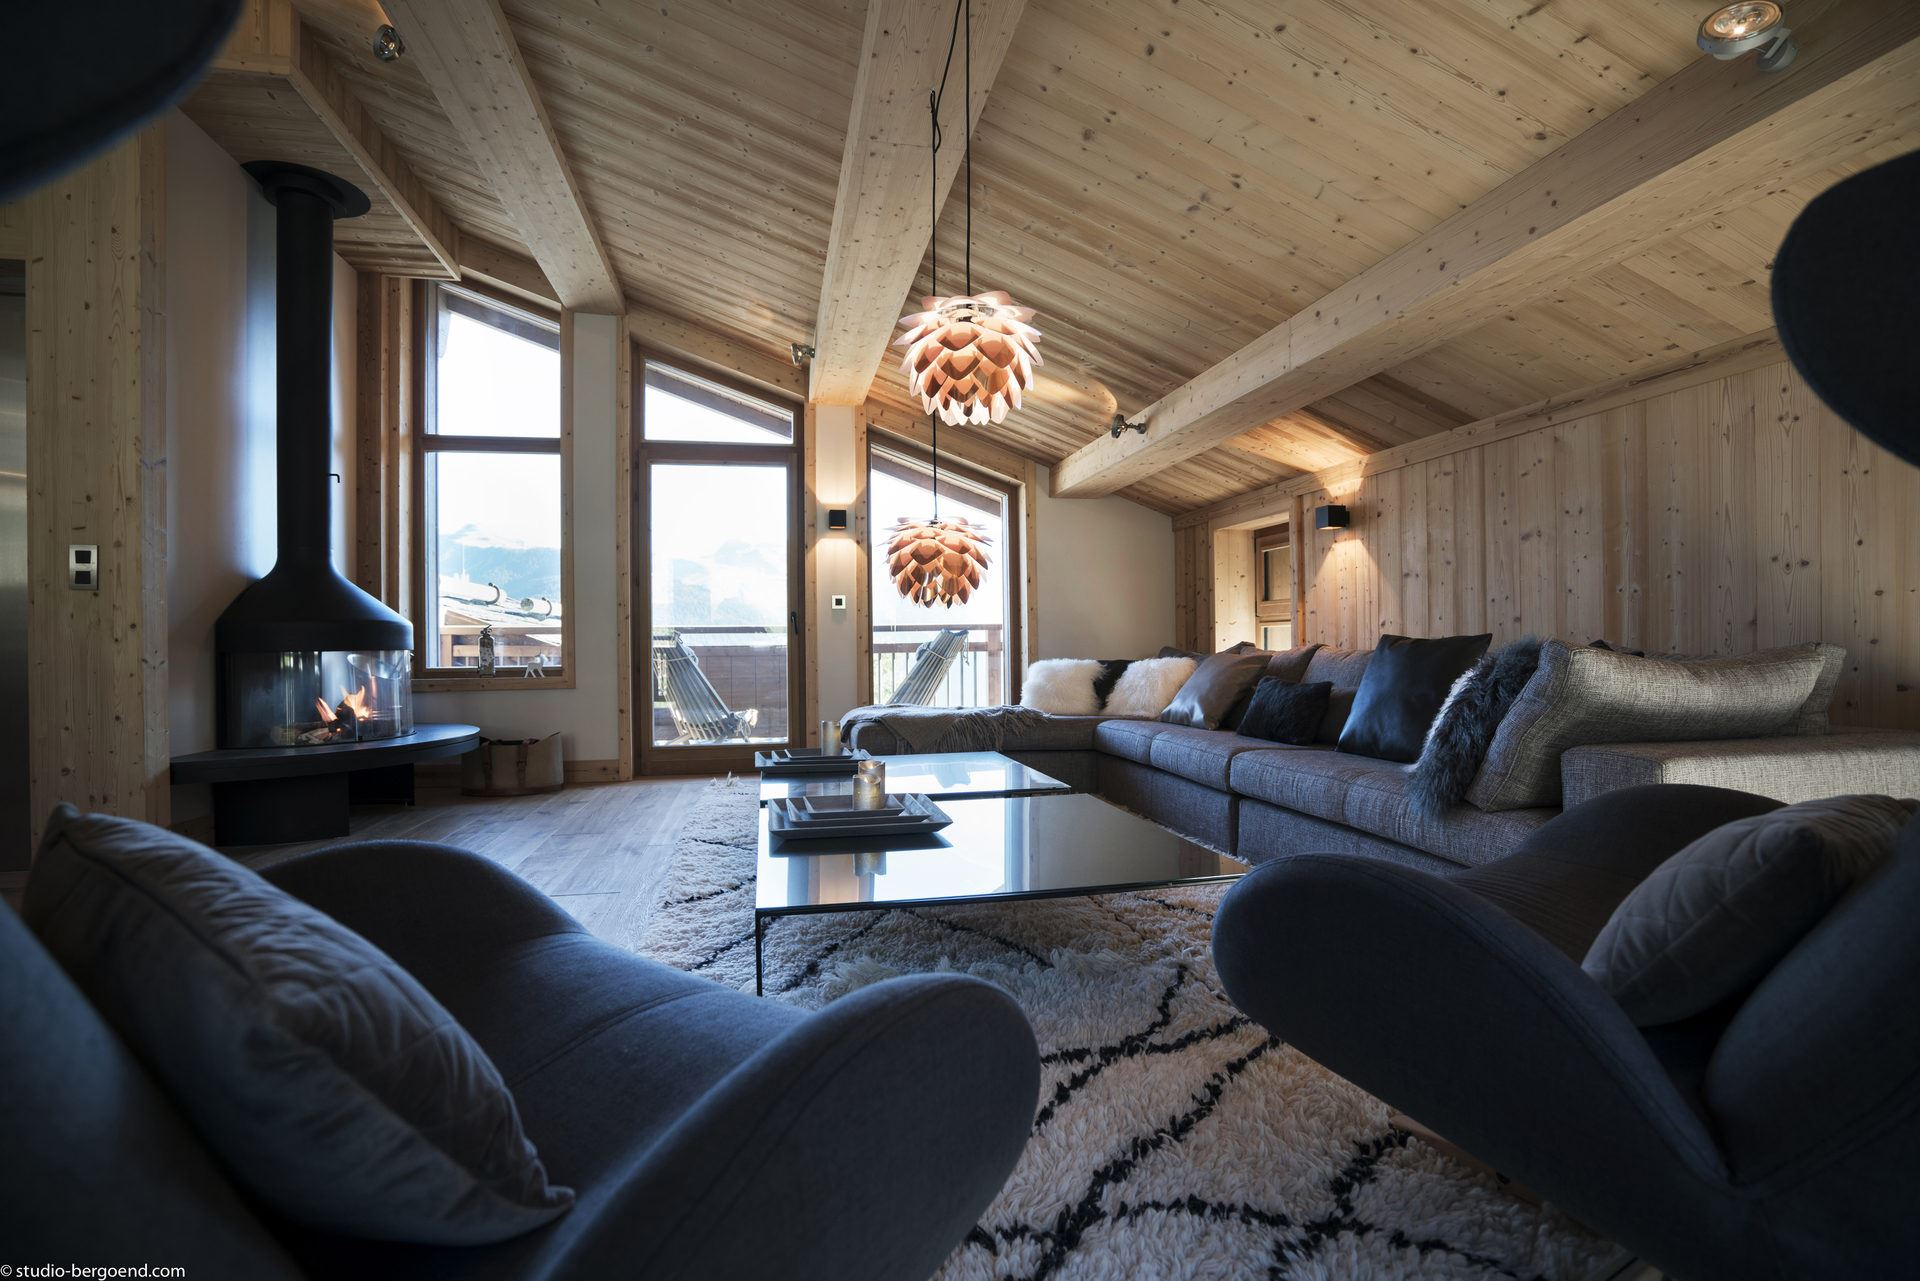 10 people / Chalet Eiger (Mountain of exception)